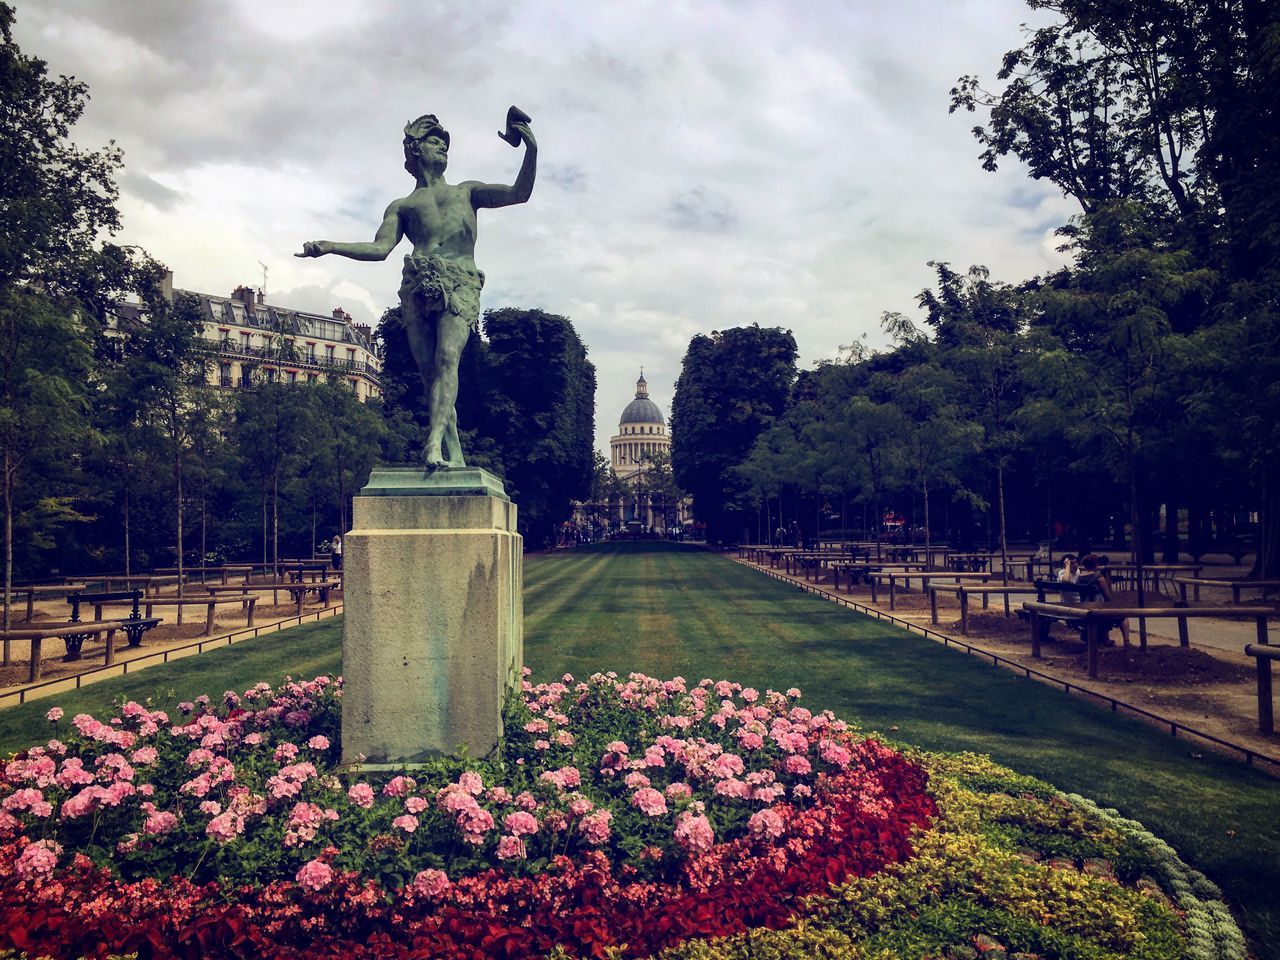 Beauty In Nature Cloud - Sky Day Flower France Freshness Growth IPhoneography Jardin Du Luxembourg Luxemburg Nature No People Outdoors Paris Plant Seightseeing Sky Statue Tourism Tree